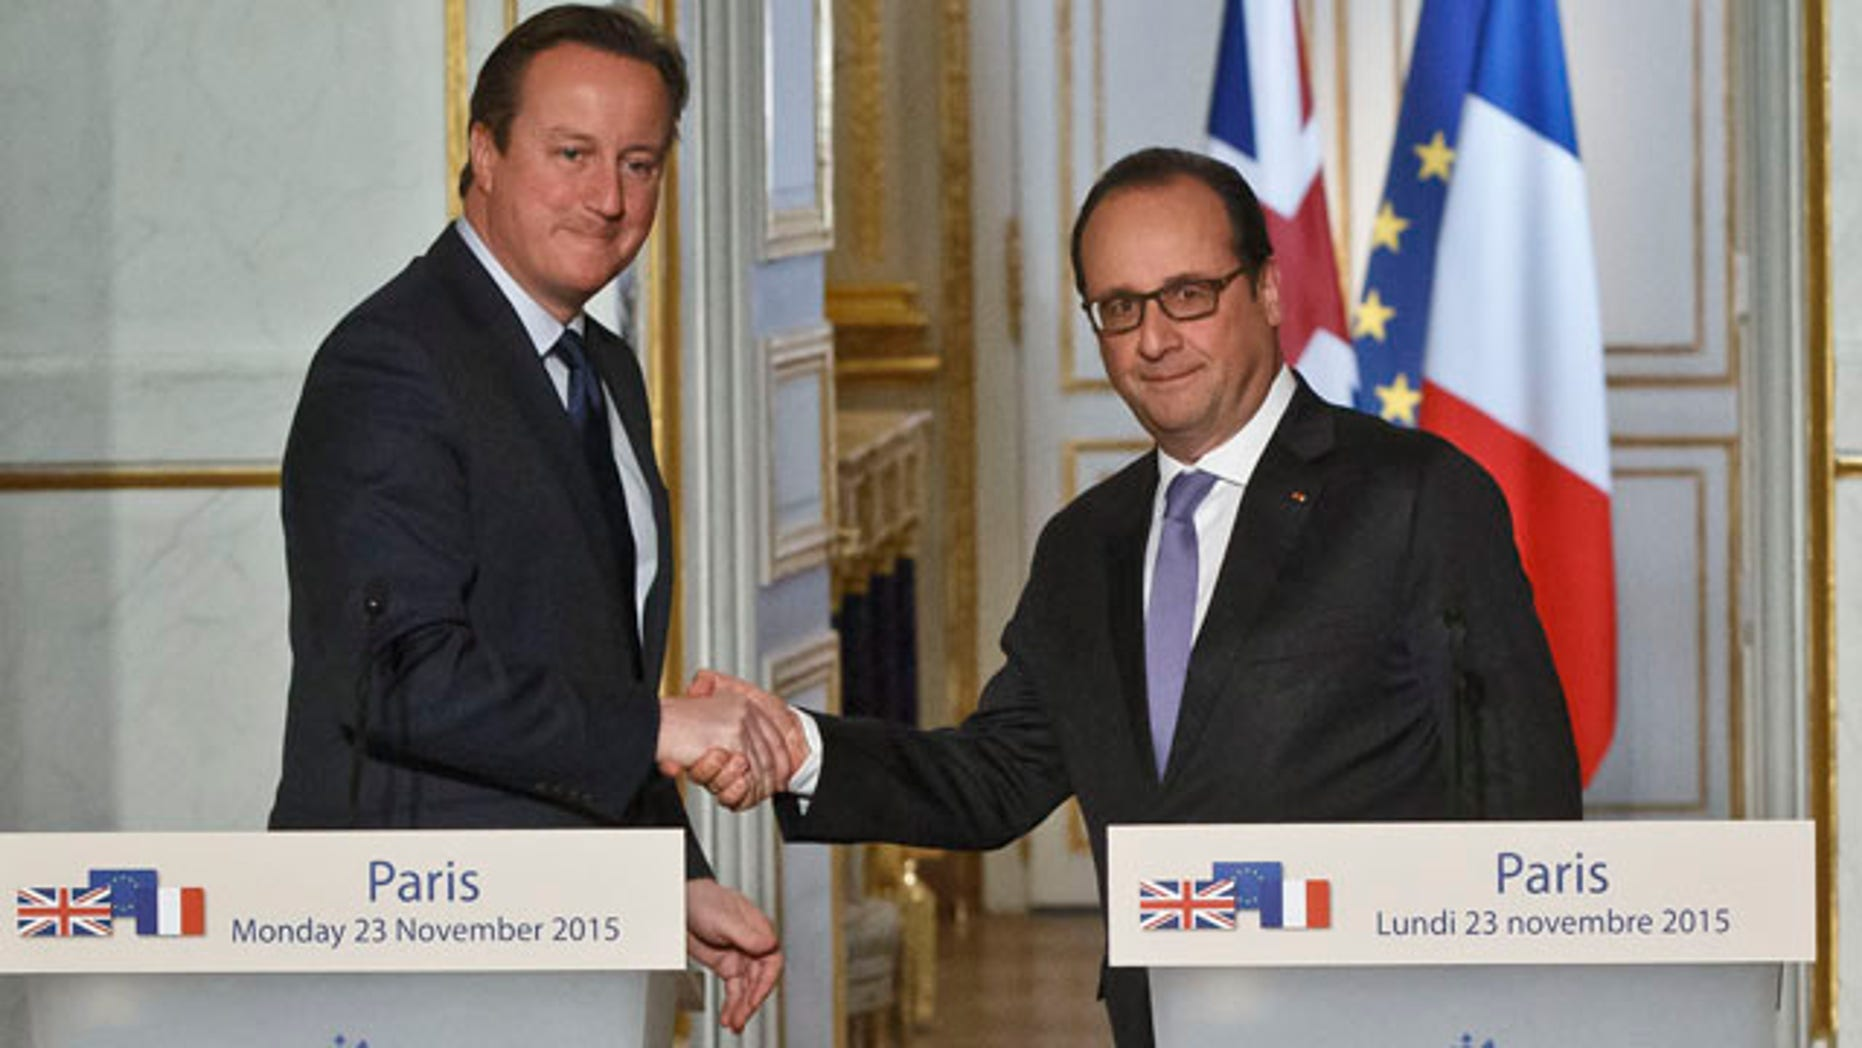 Nov. 23, 2015: Britain's Prime Minister David Cameron, left, and France's President Francois Hollande shake hands after they issued a joint statement to the media at the Elysee Palace in Paris. (AP Photo/Michel Euler)